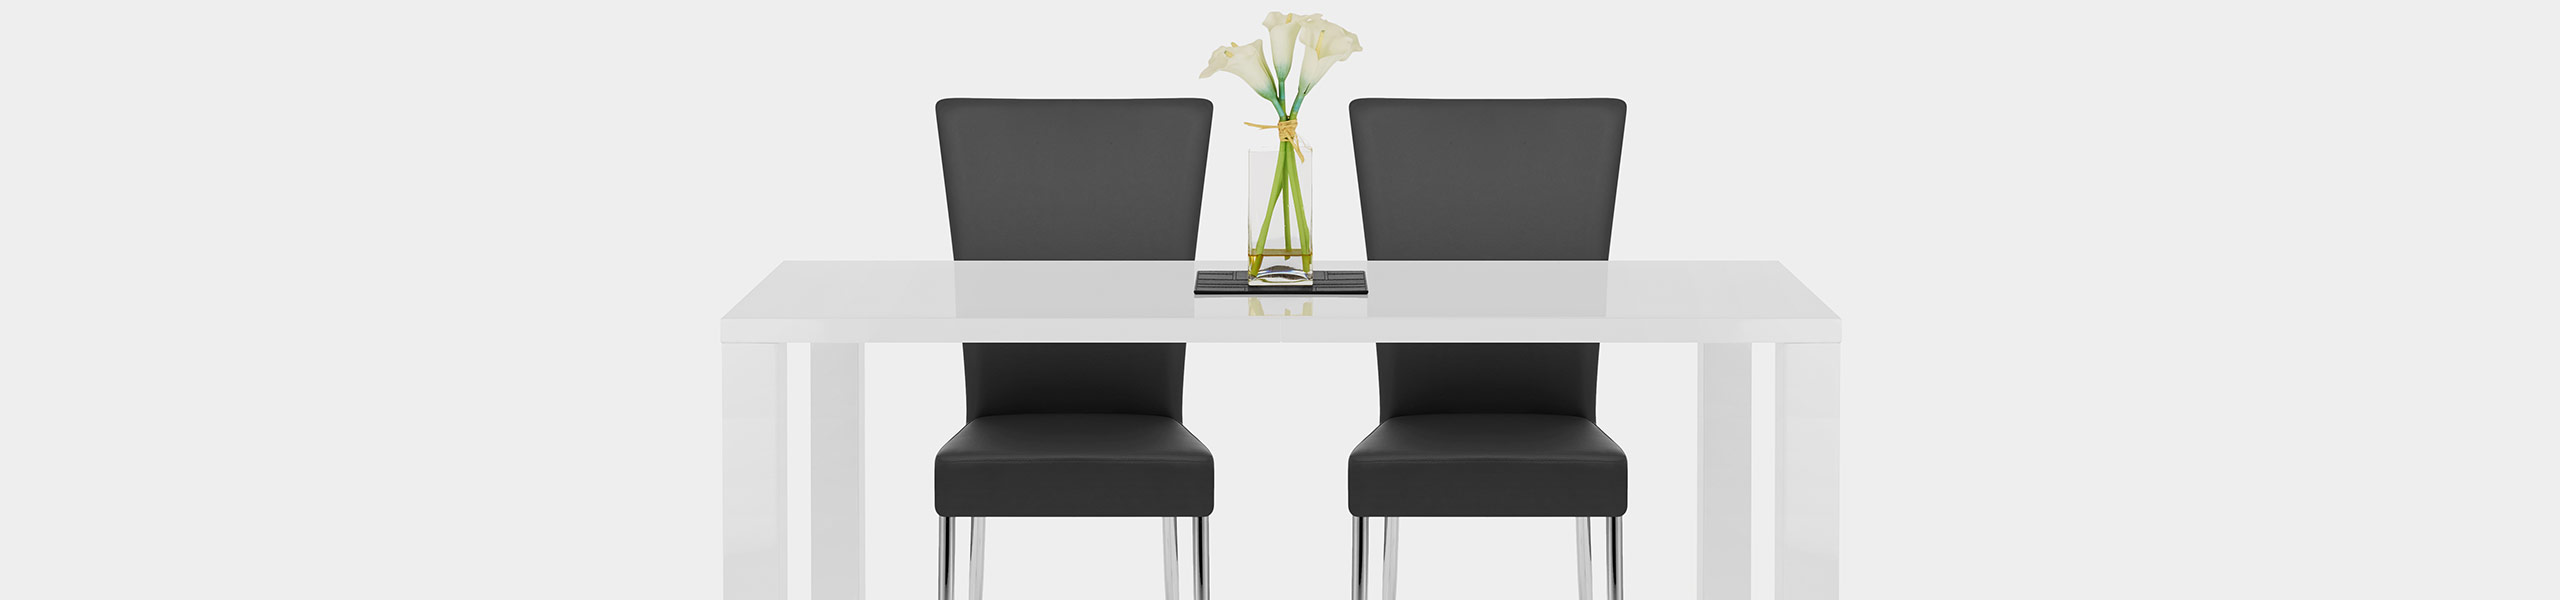 Picasso Dining Chair Black Video Banner